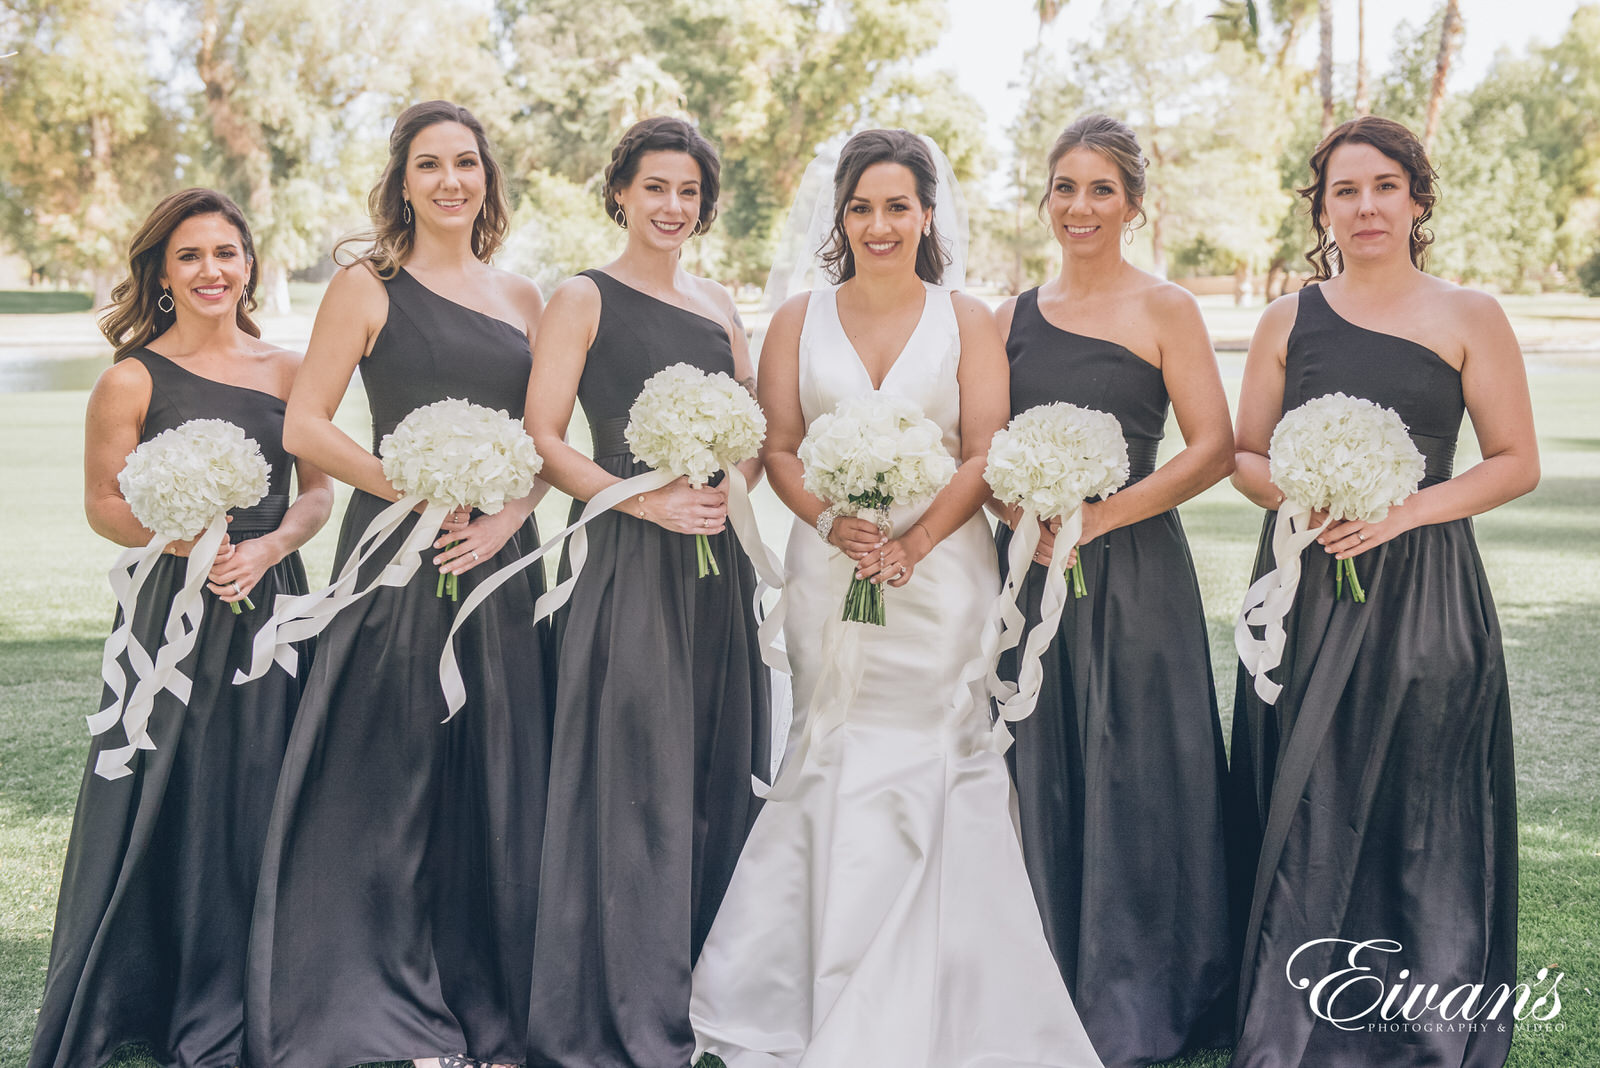 married woman standing next to bridesmaids wearing black dresses